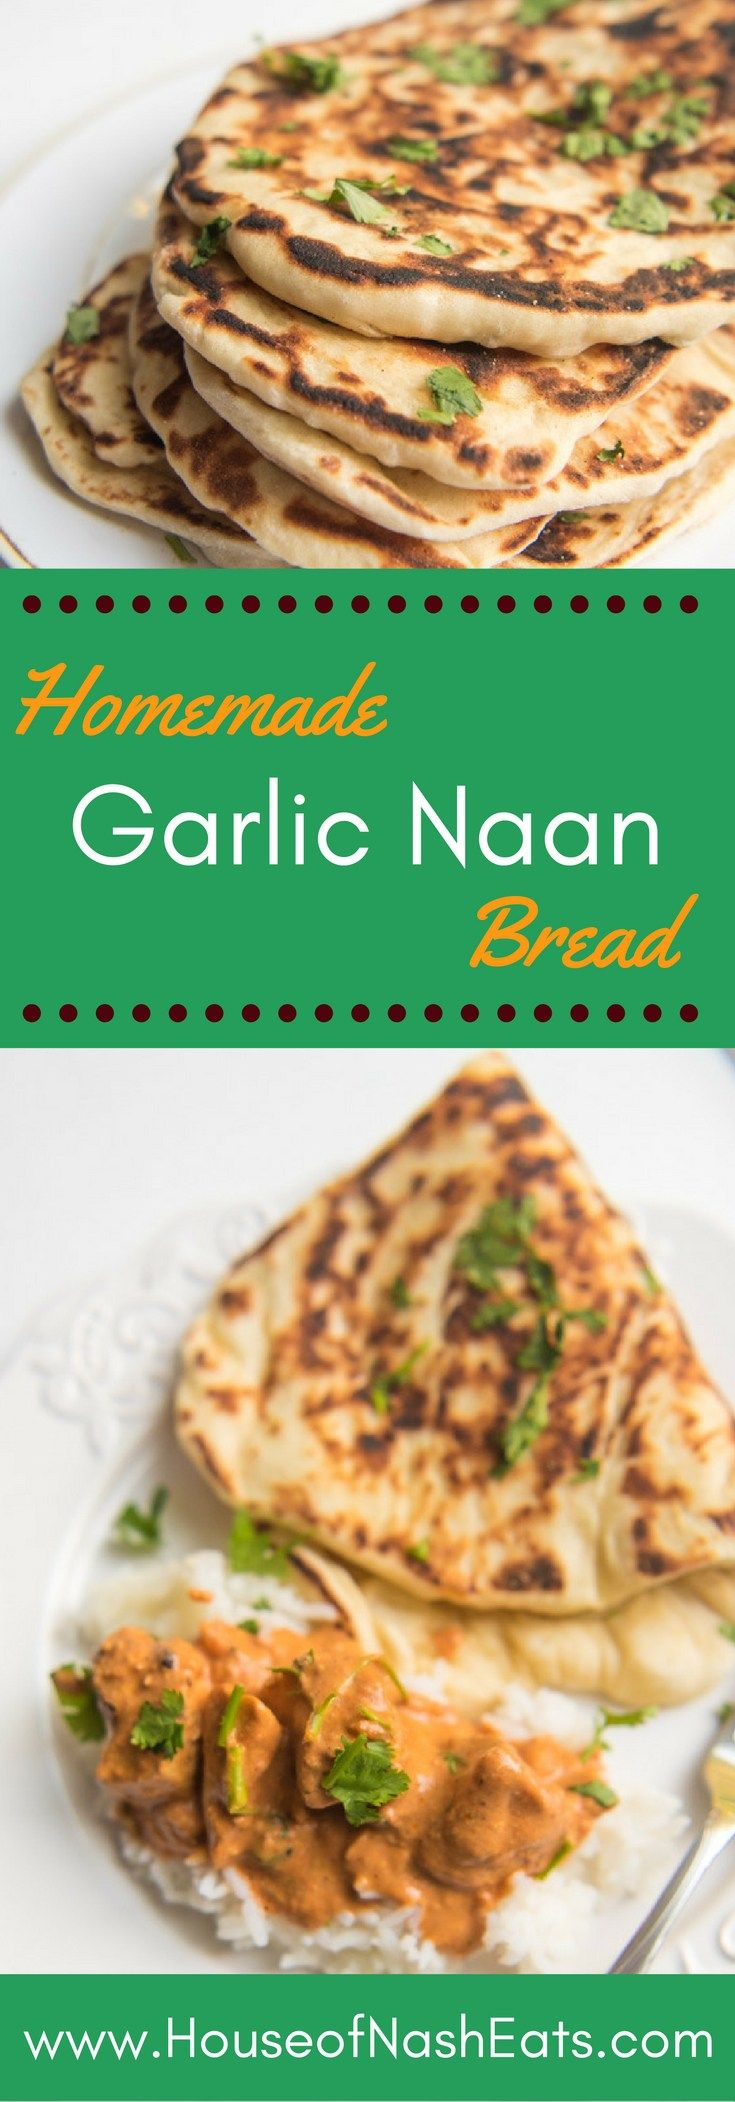 No need for a tandoori oven to make wonderful, warm homemade garlic naan bread…